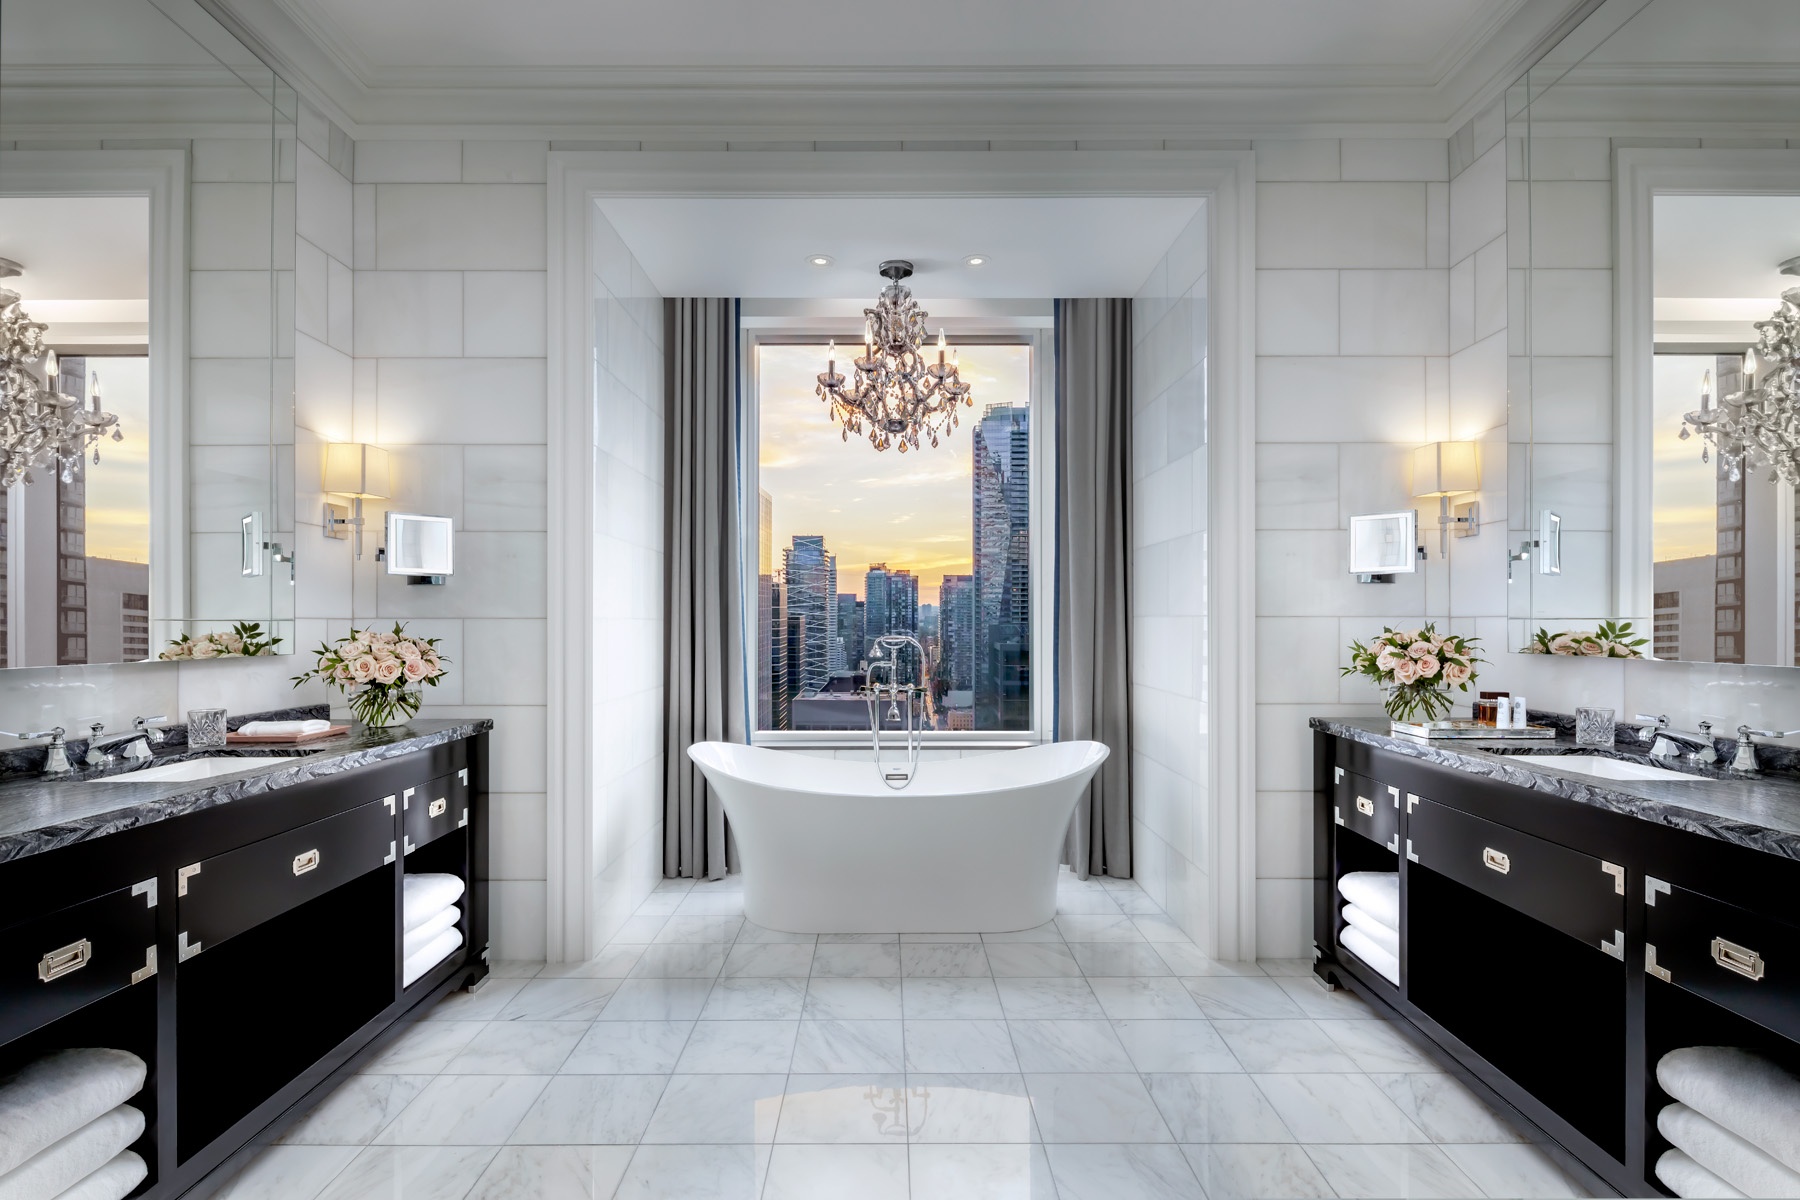 674ab49b-29dc-4a4e-a088-02208ce4b0ce-astor-suite-bathroom.jpg